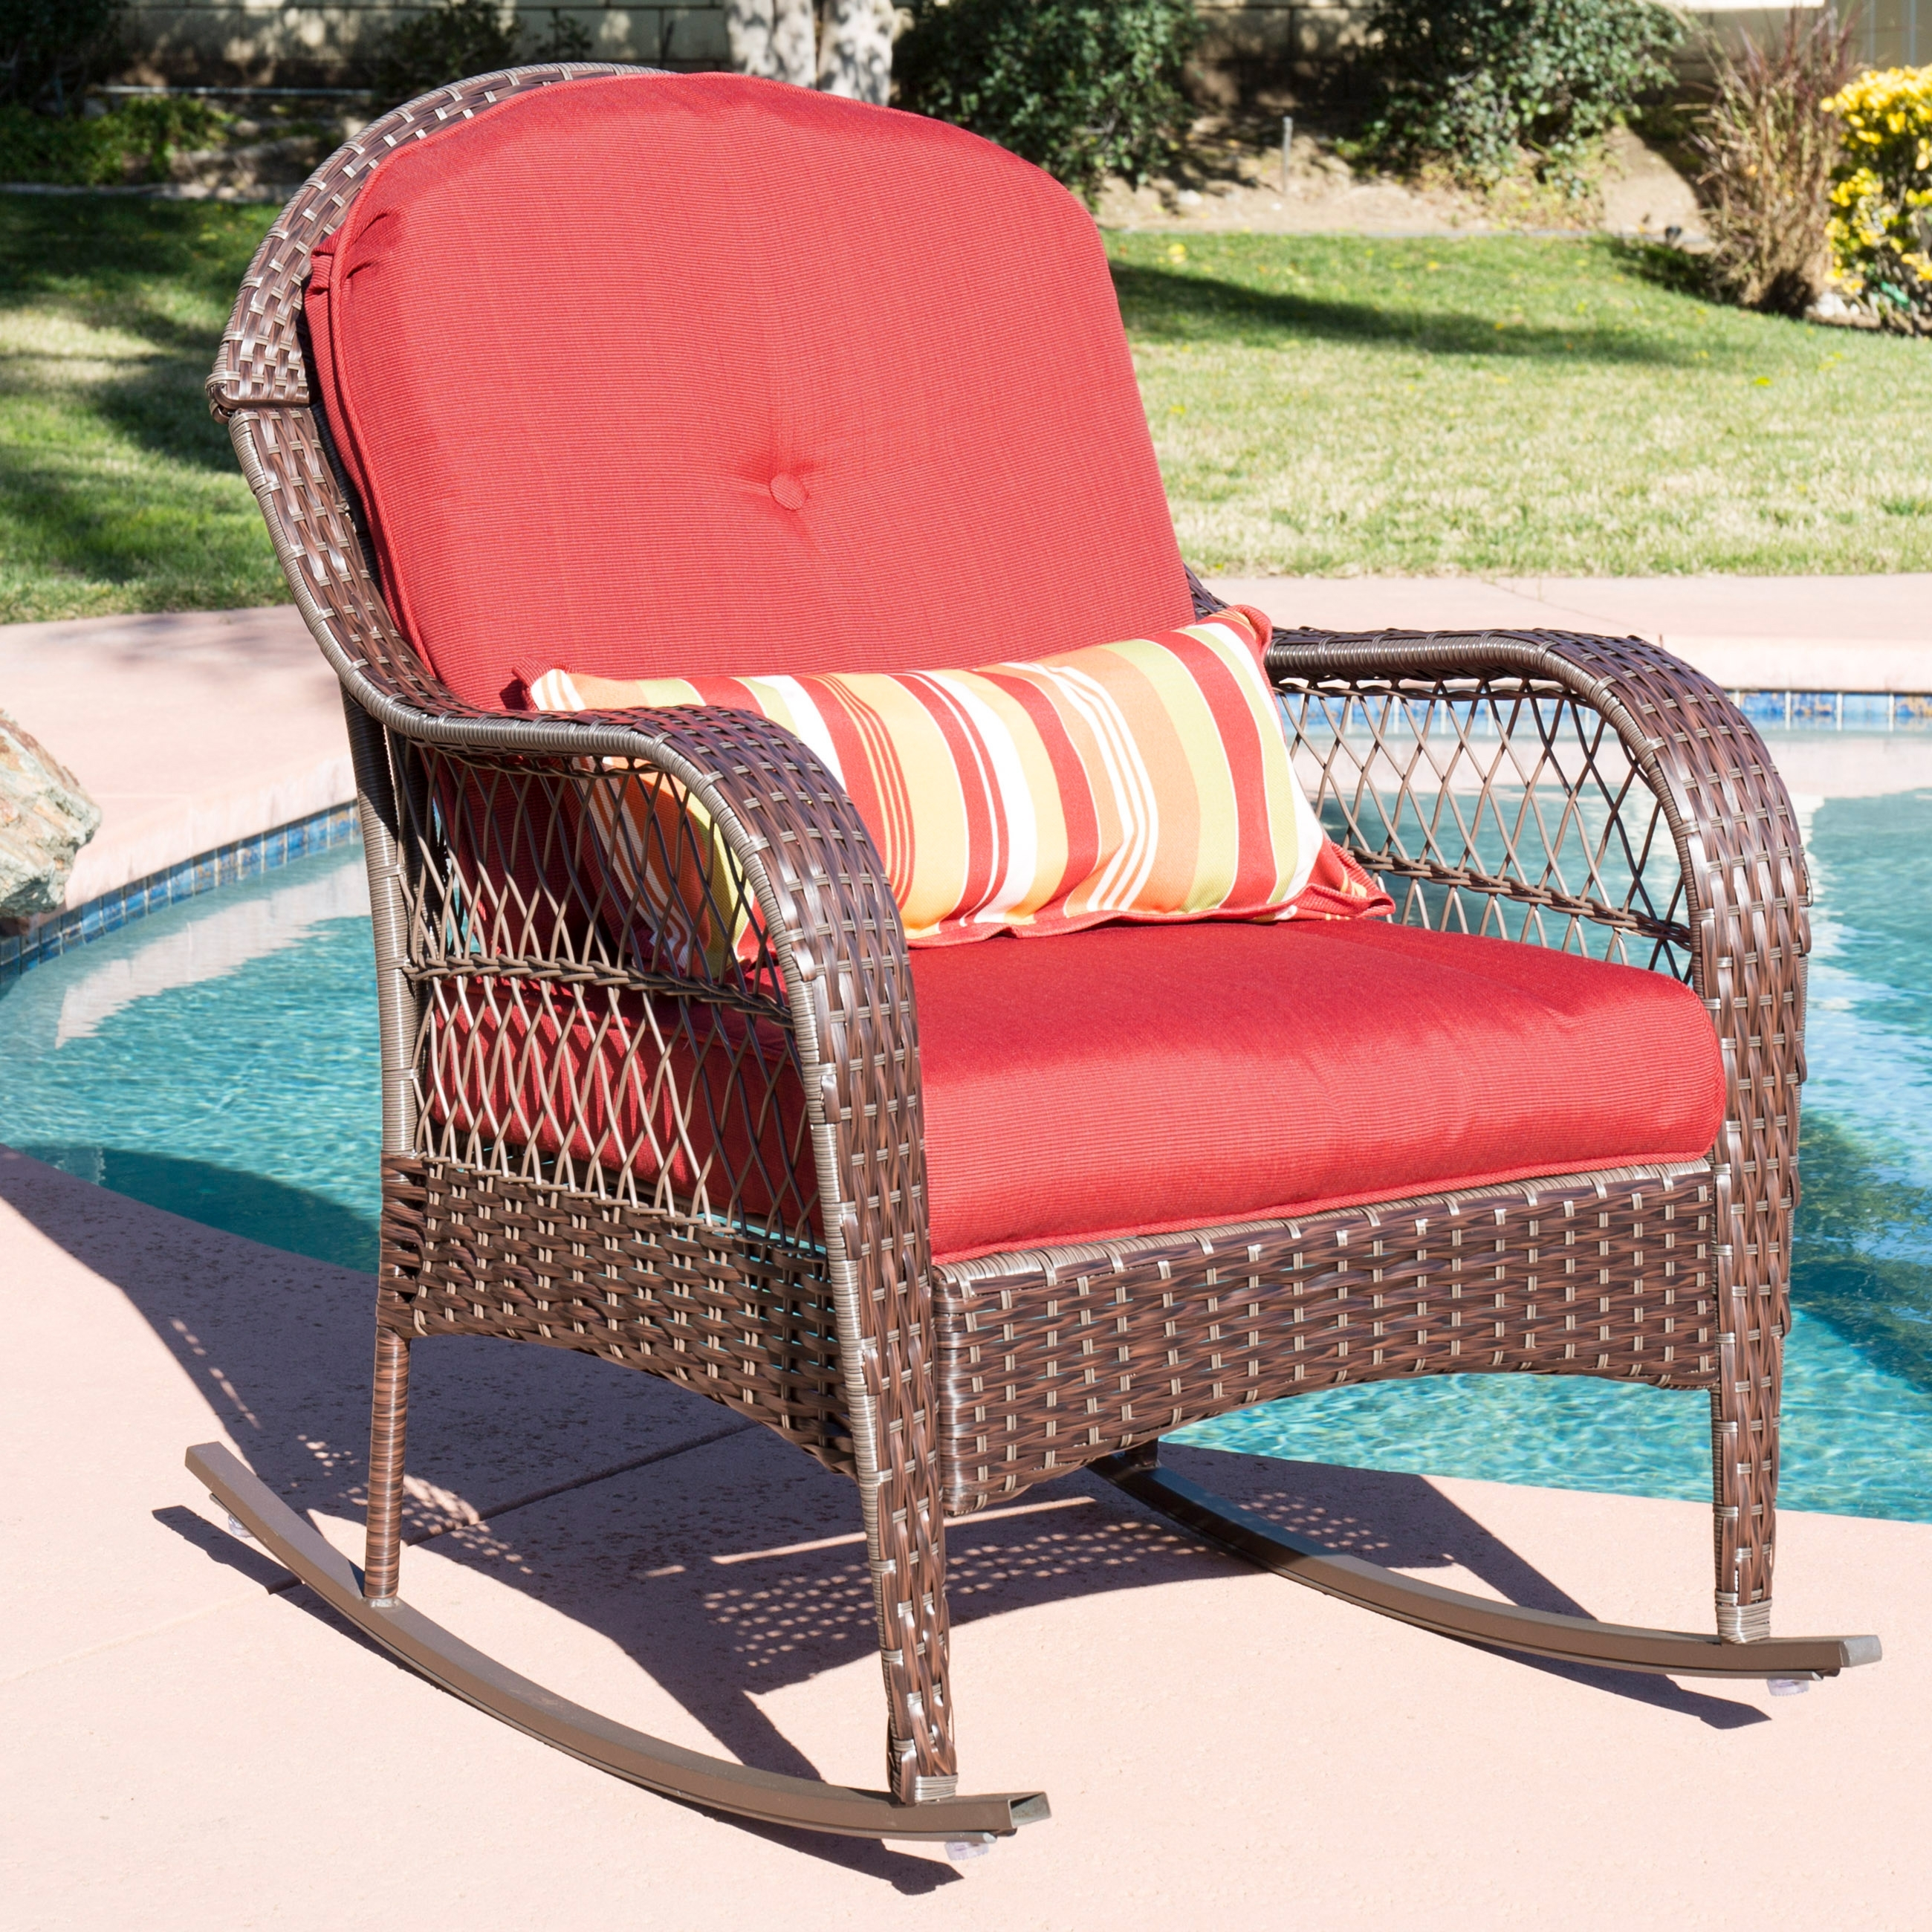 2018 Patio Rocking Chairs With Cushions Within Bestchoiceproducts: Best Choice Products Wicker Rocking Chair Patio (View 20 of 20)